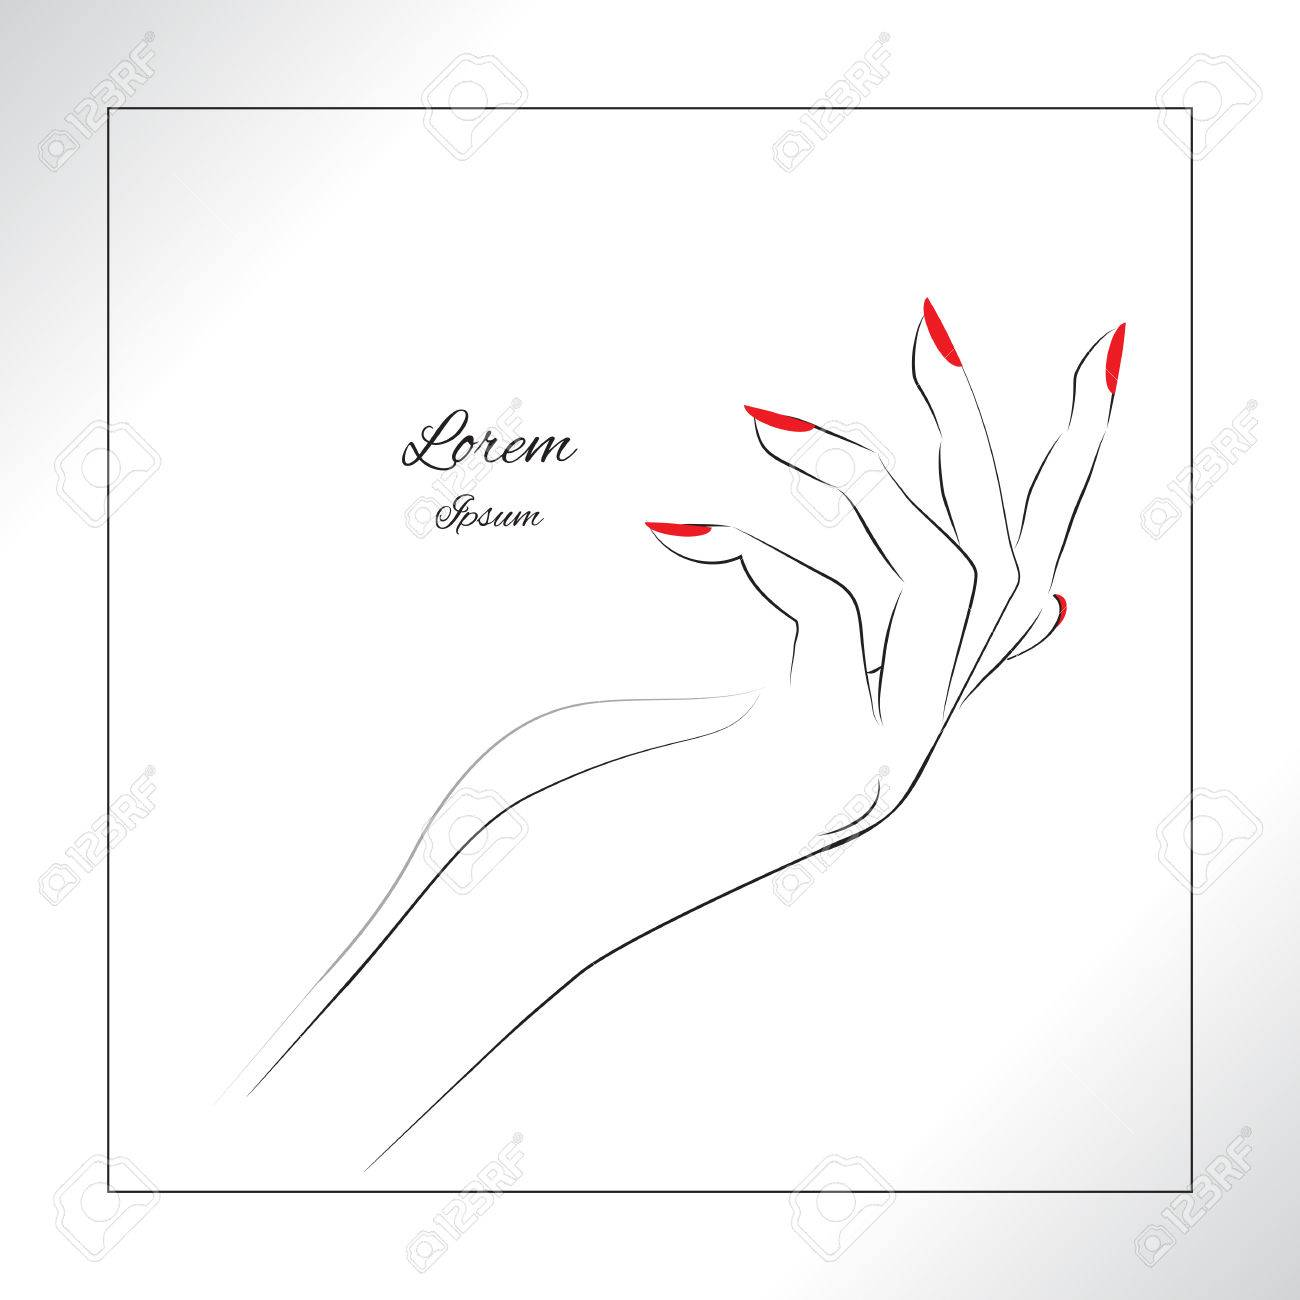 Female hand with painted nails, red manicure symbol. Vector illustration. - 51825109